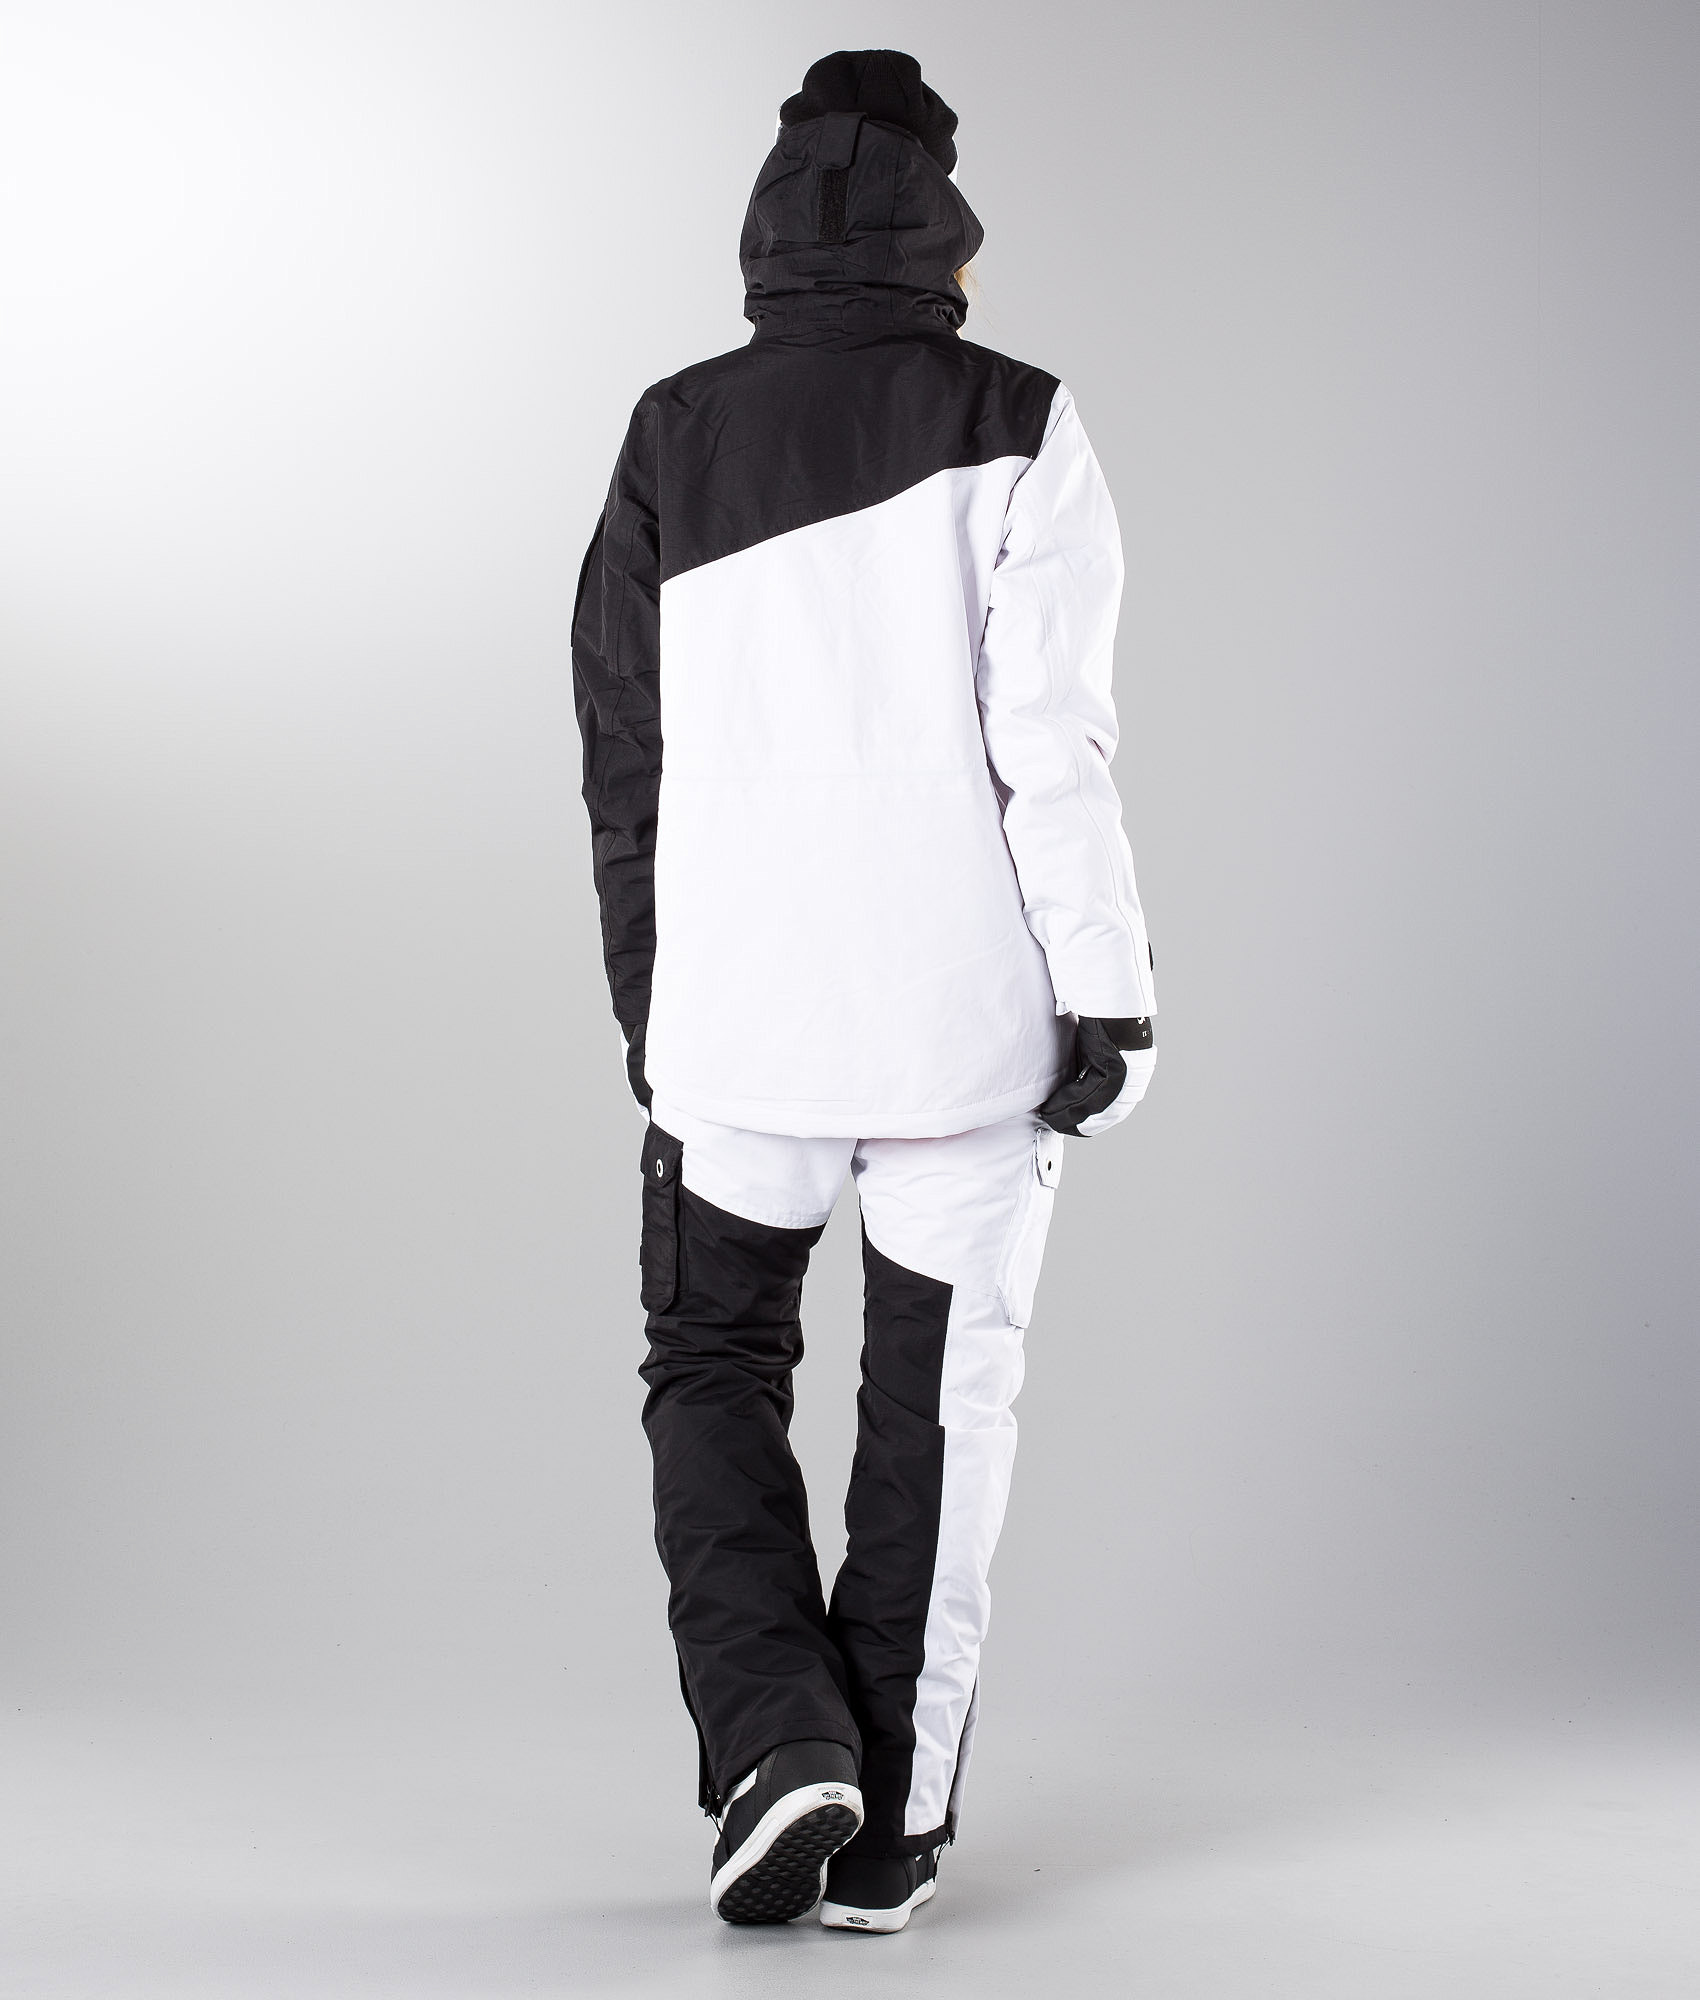 76a40a8368 Dope Adept W Snowboard Jacket Black White - Ridestore.com